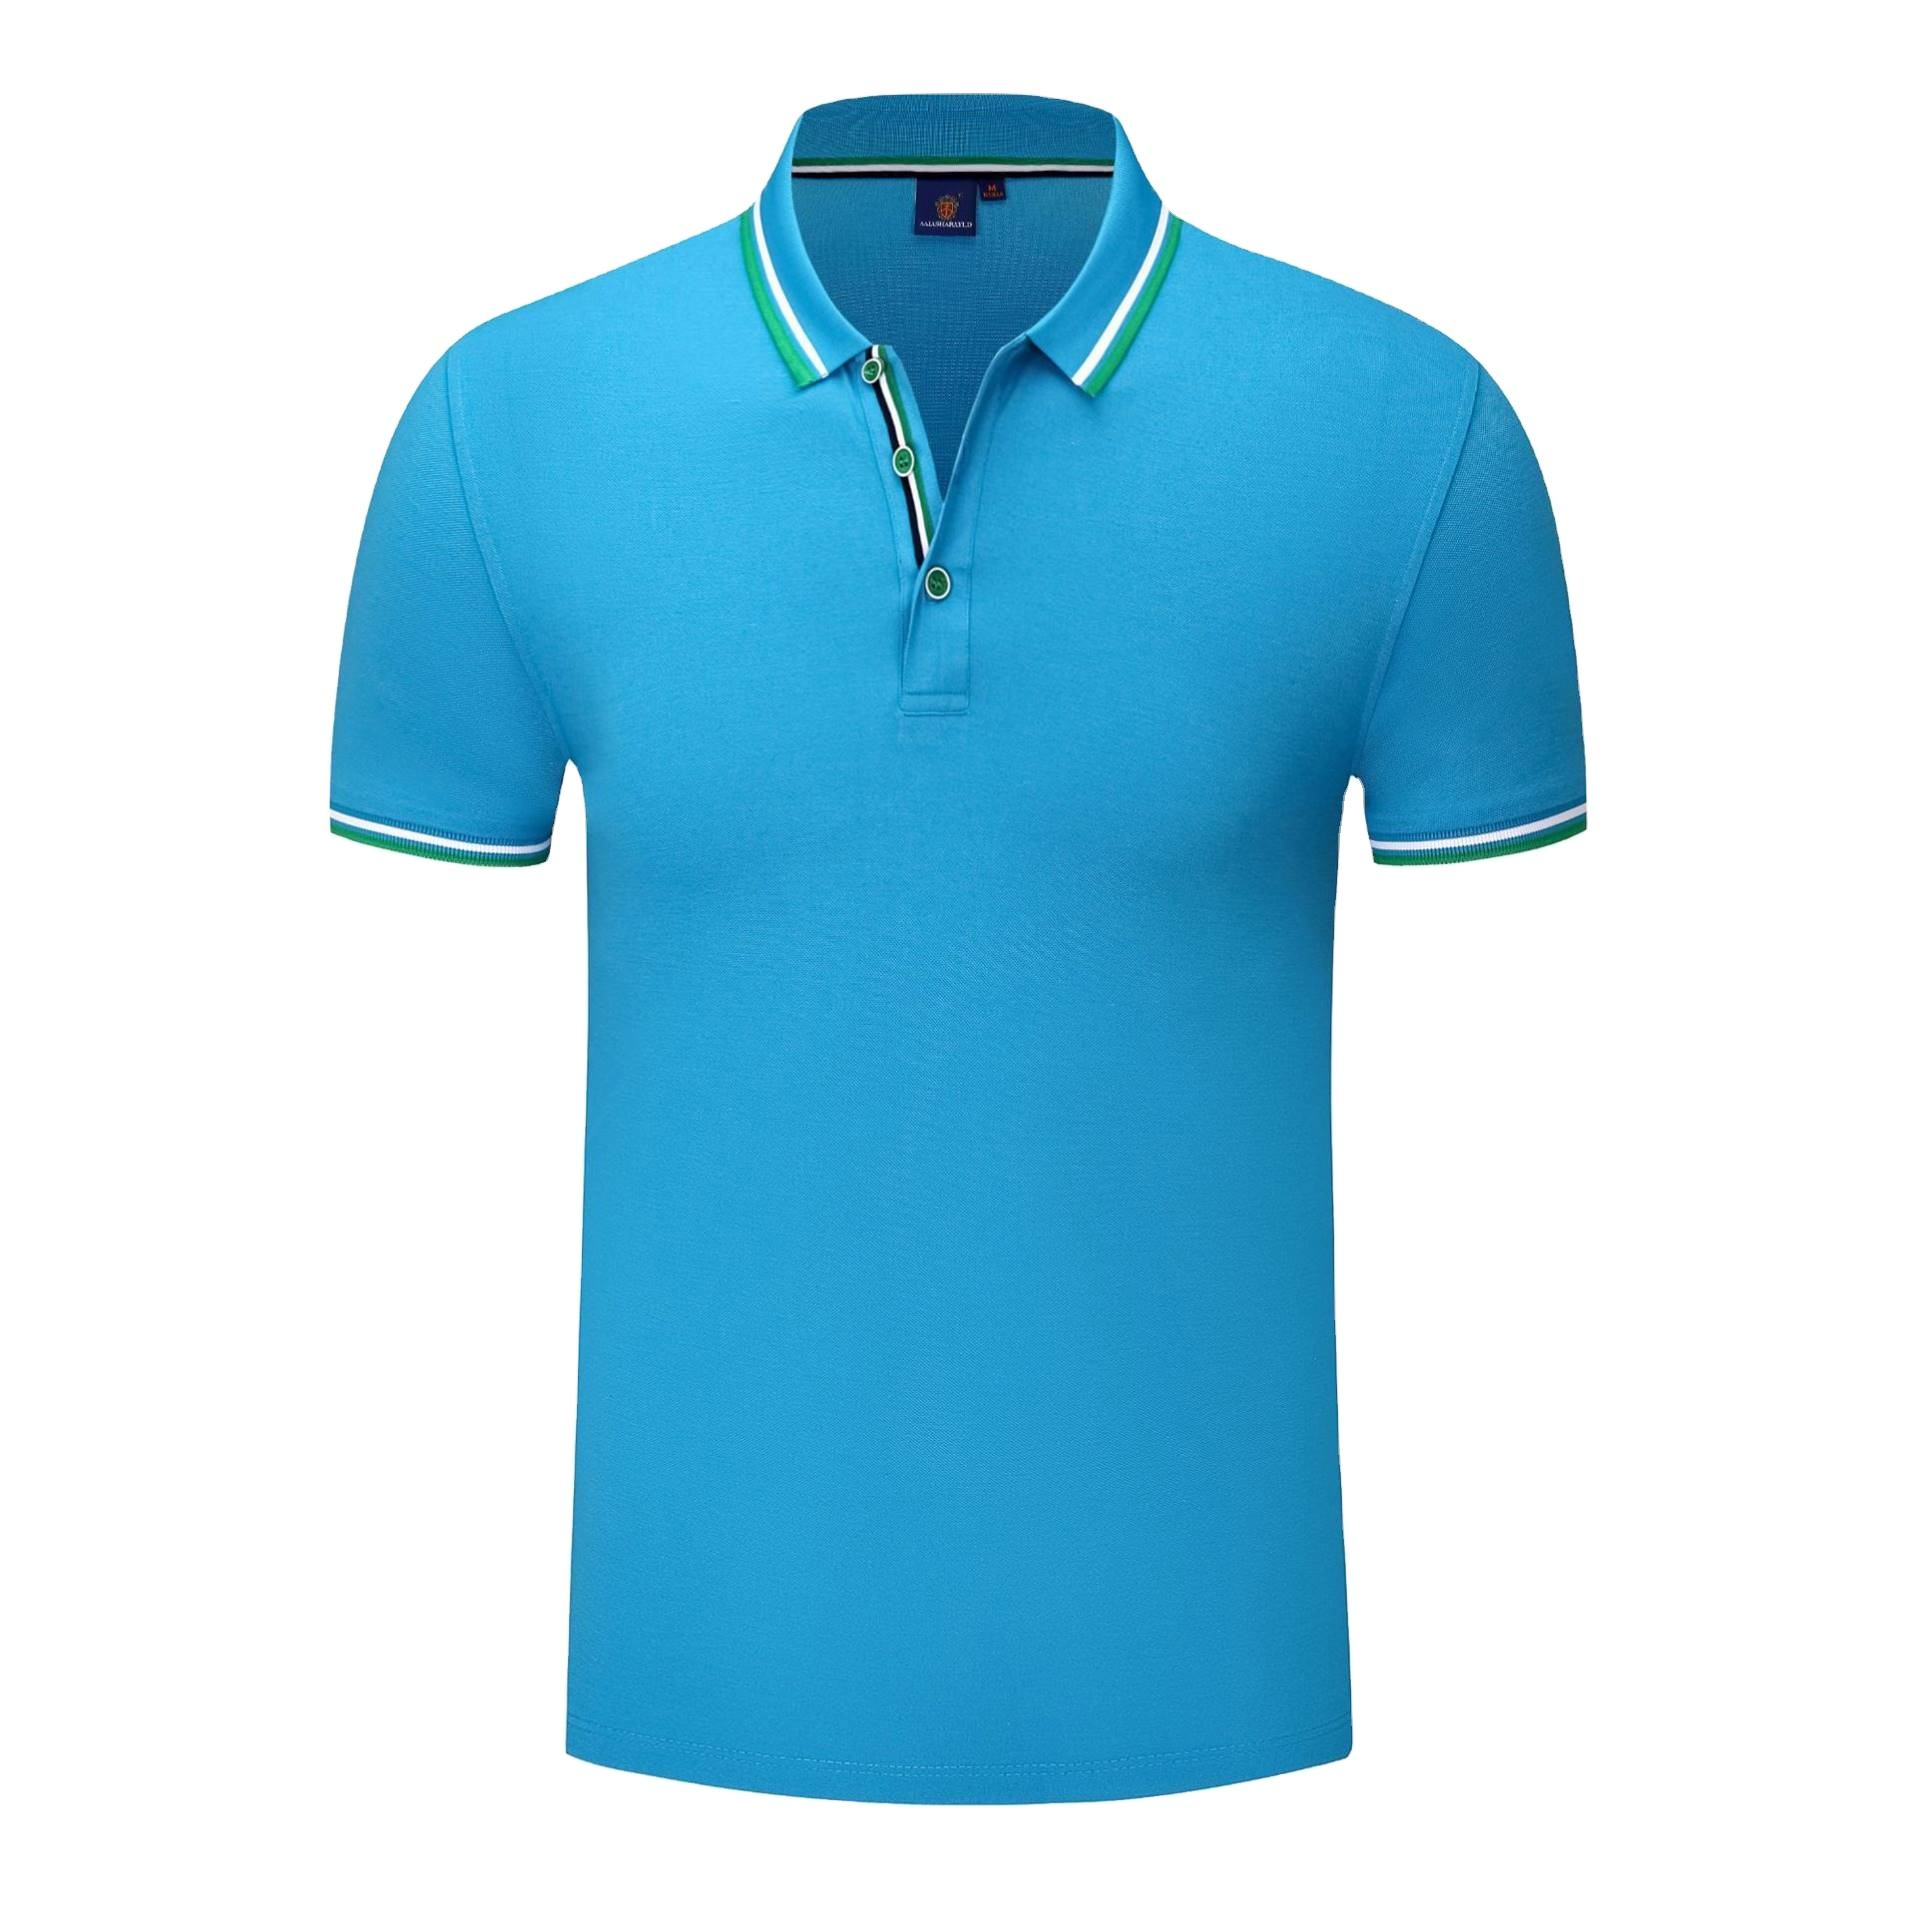 Kaus Formal Polo OEM Kaos Tanpa Logo Day Man Polo Katun/Spandeks 200/220 Gsm